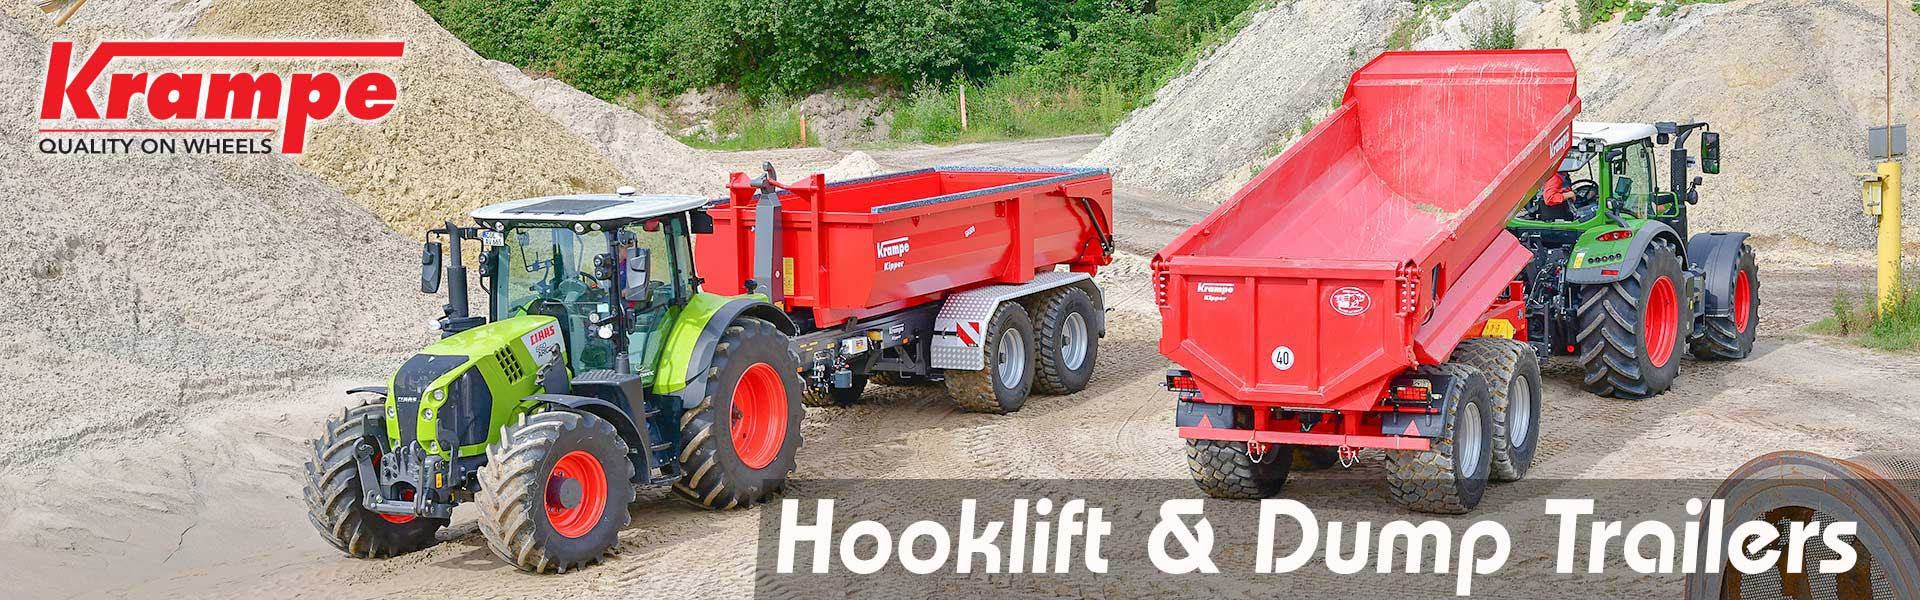 krampe hook lifts and dump trailers in quarry